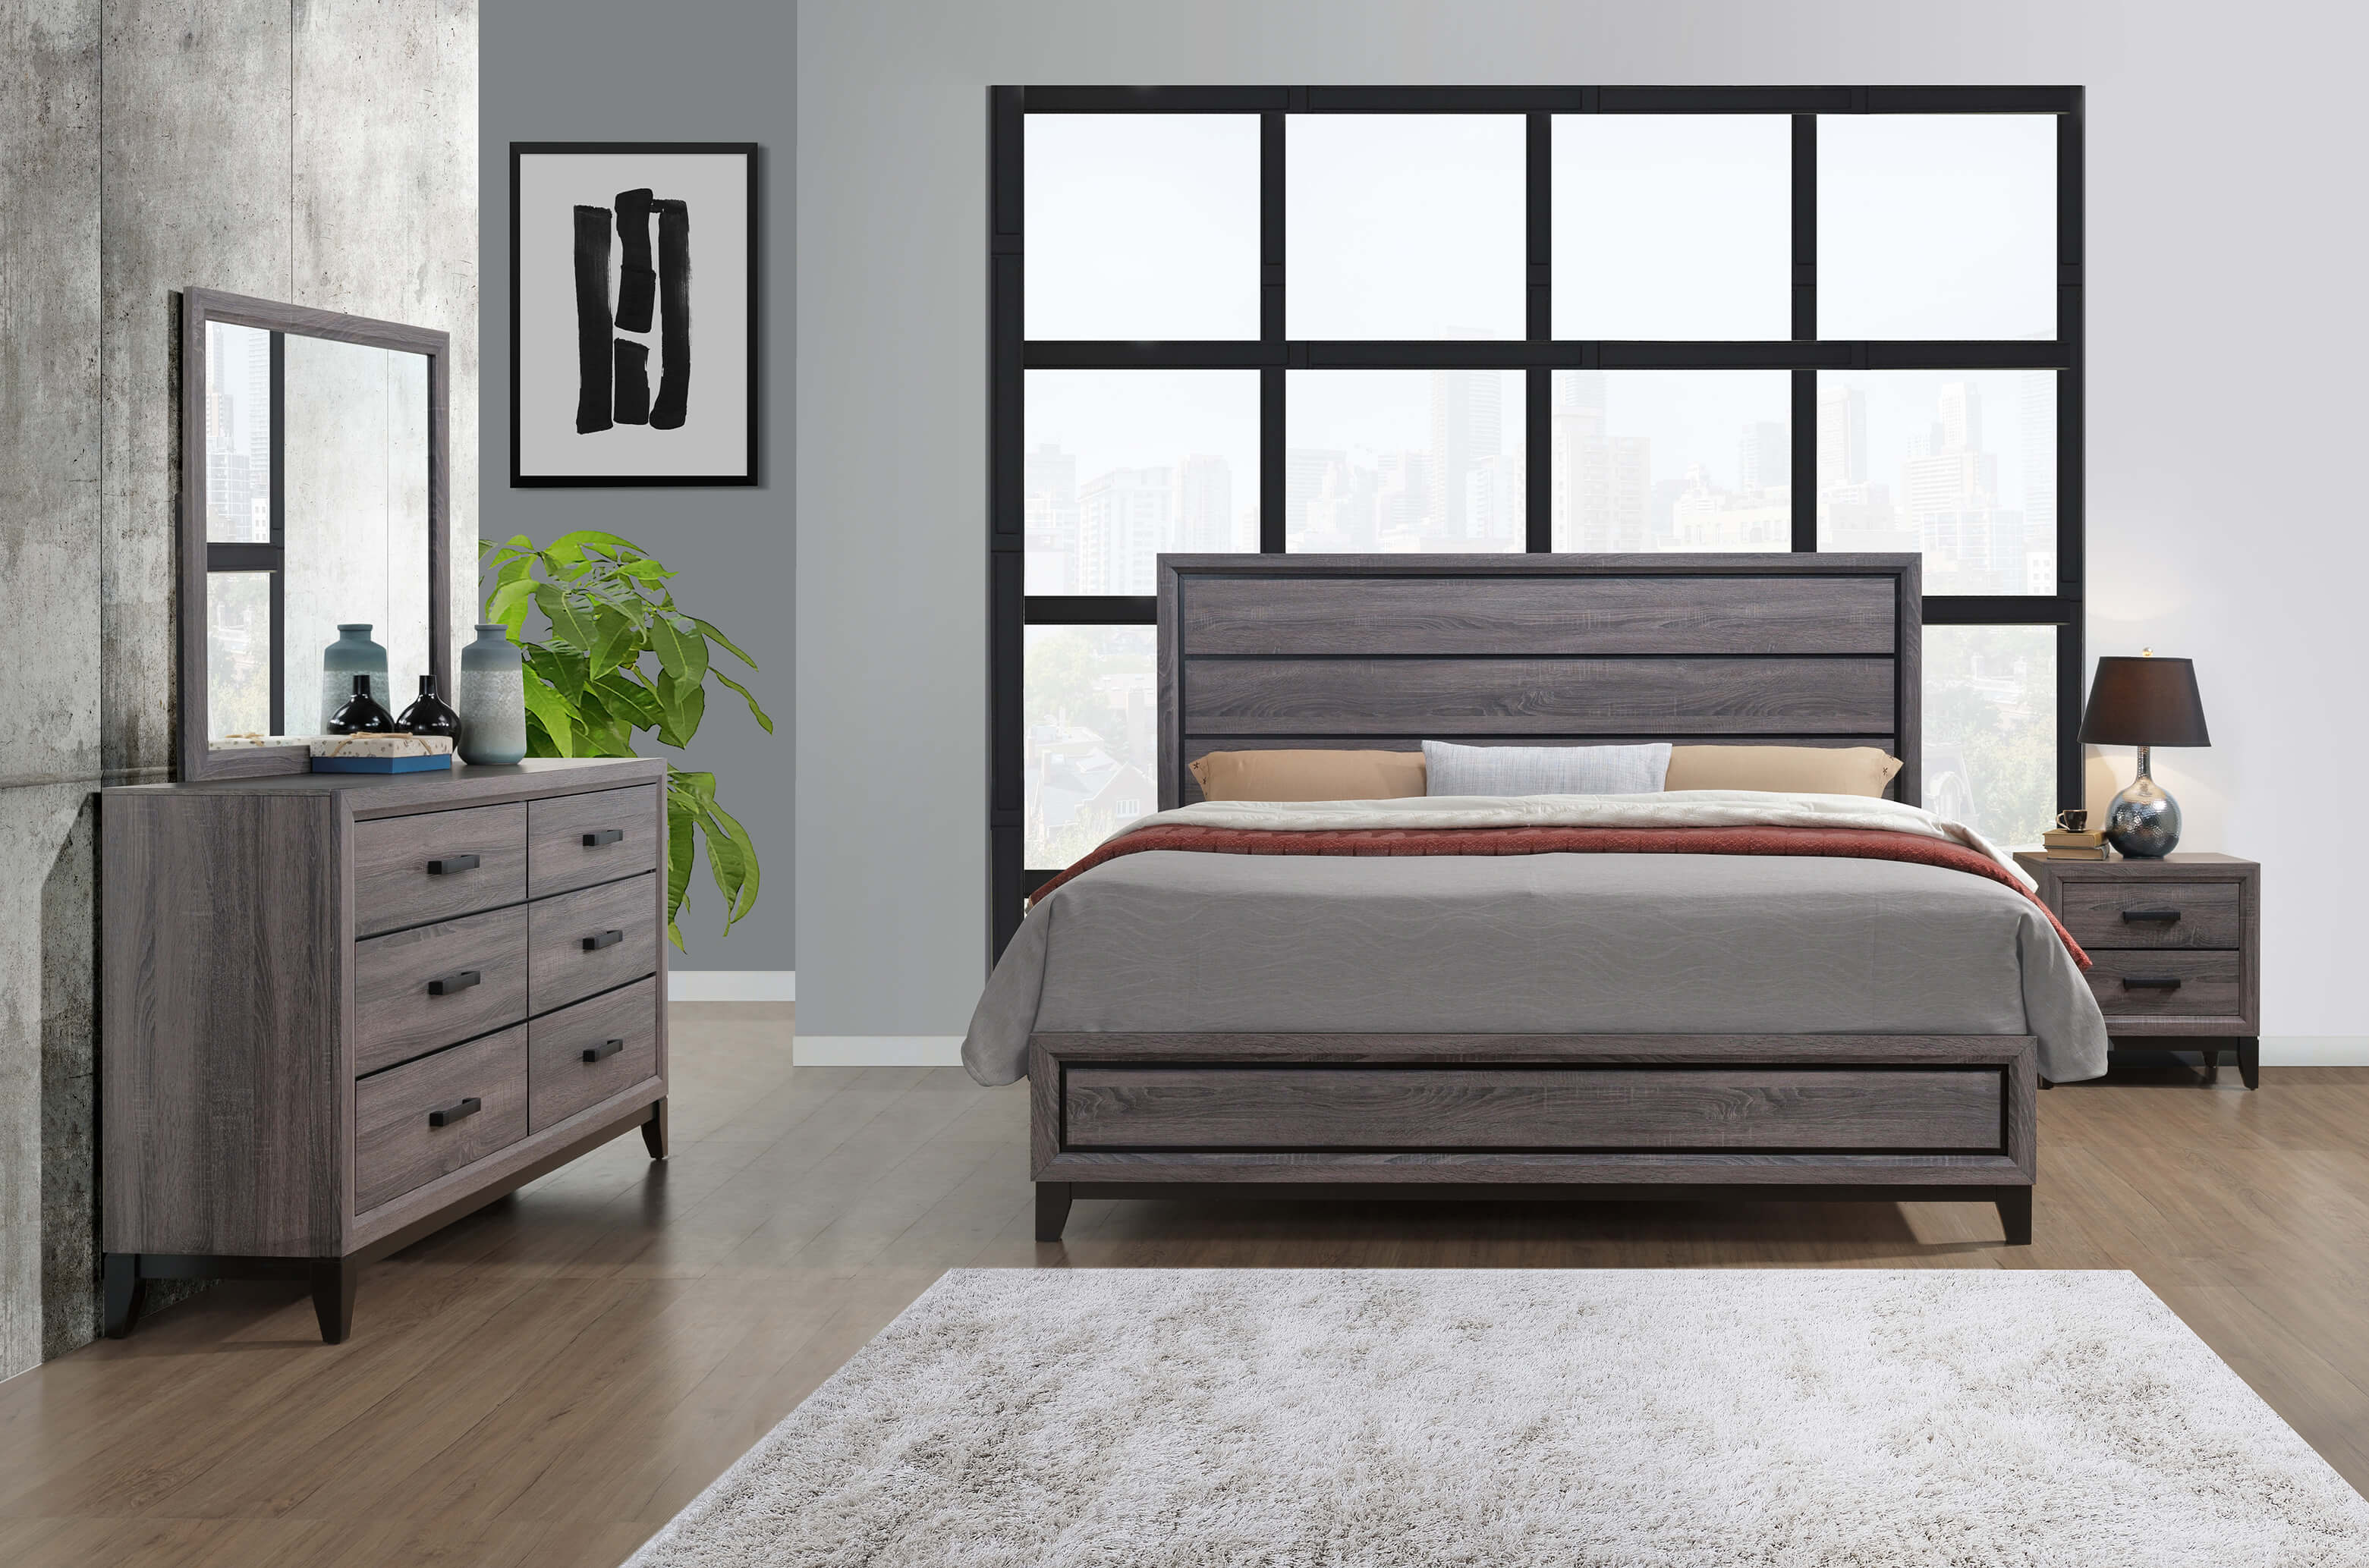 Kate beech wood grey bedroom set bedroom furniture sets for Grey wood bedroom furniture set